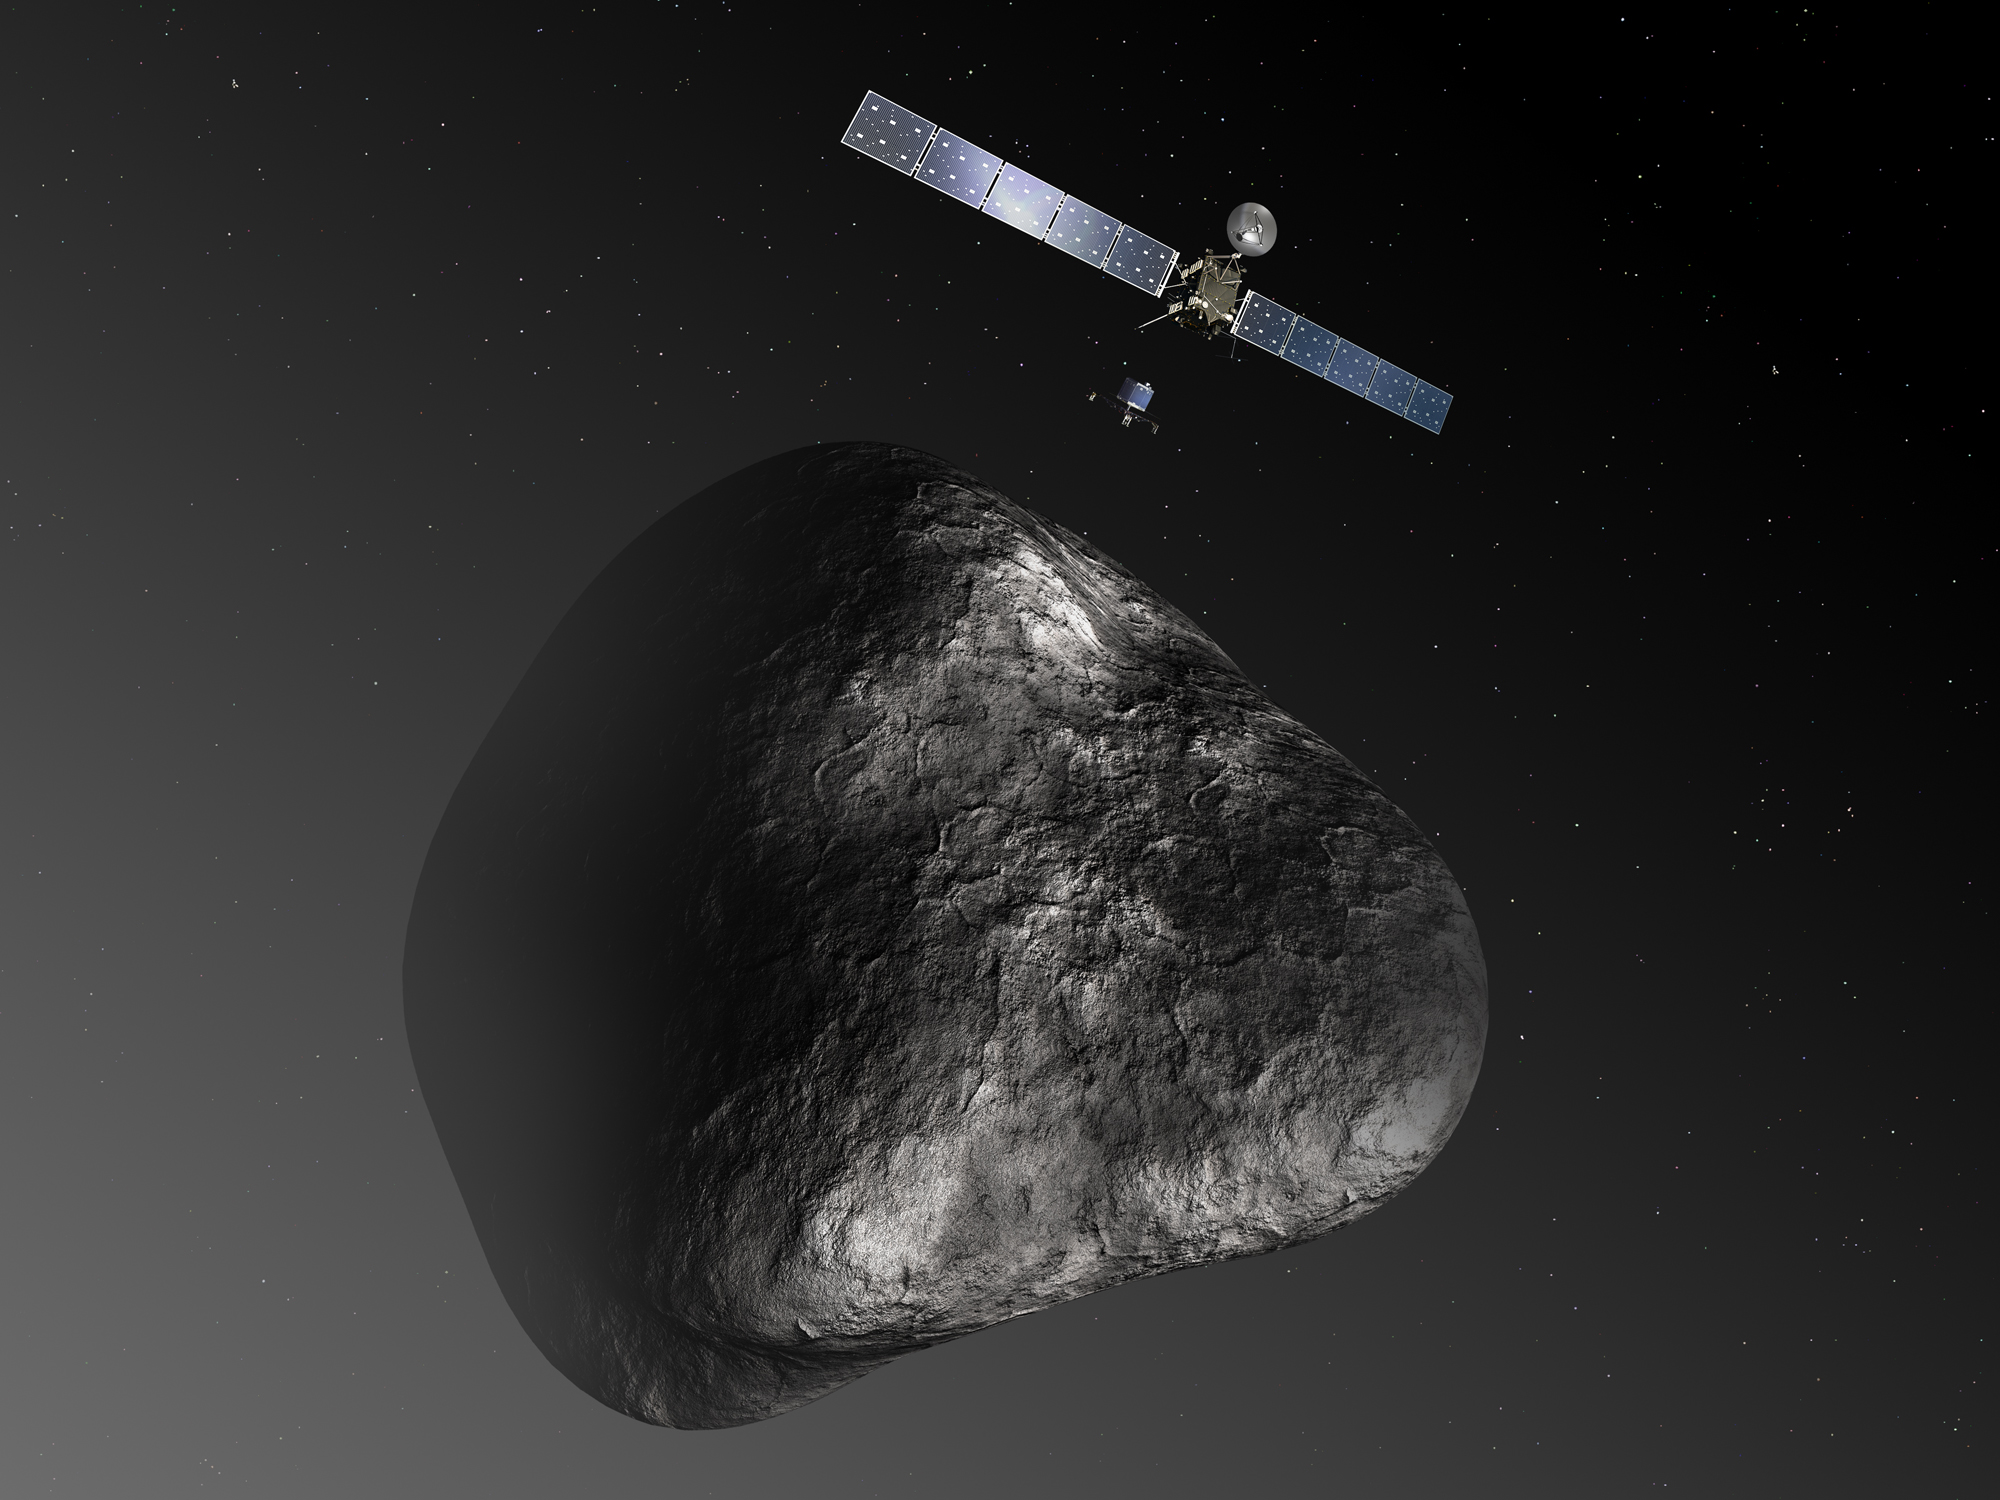 rosetta_philae_artist_impression_far_2k